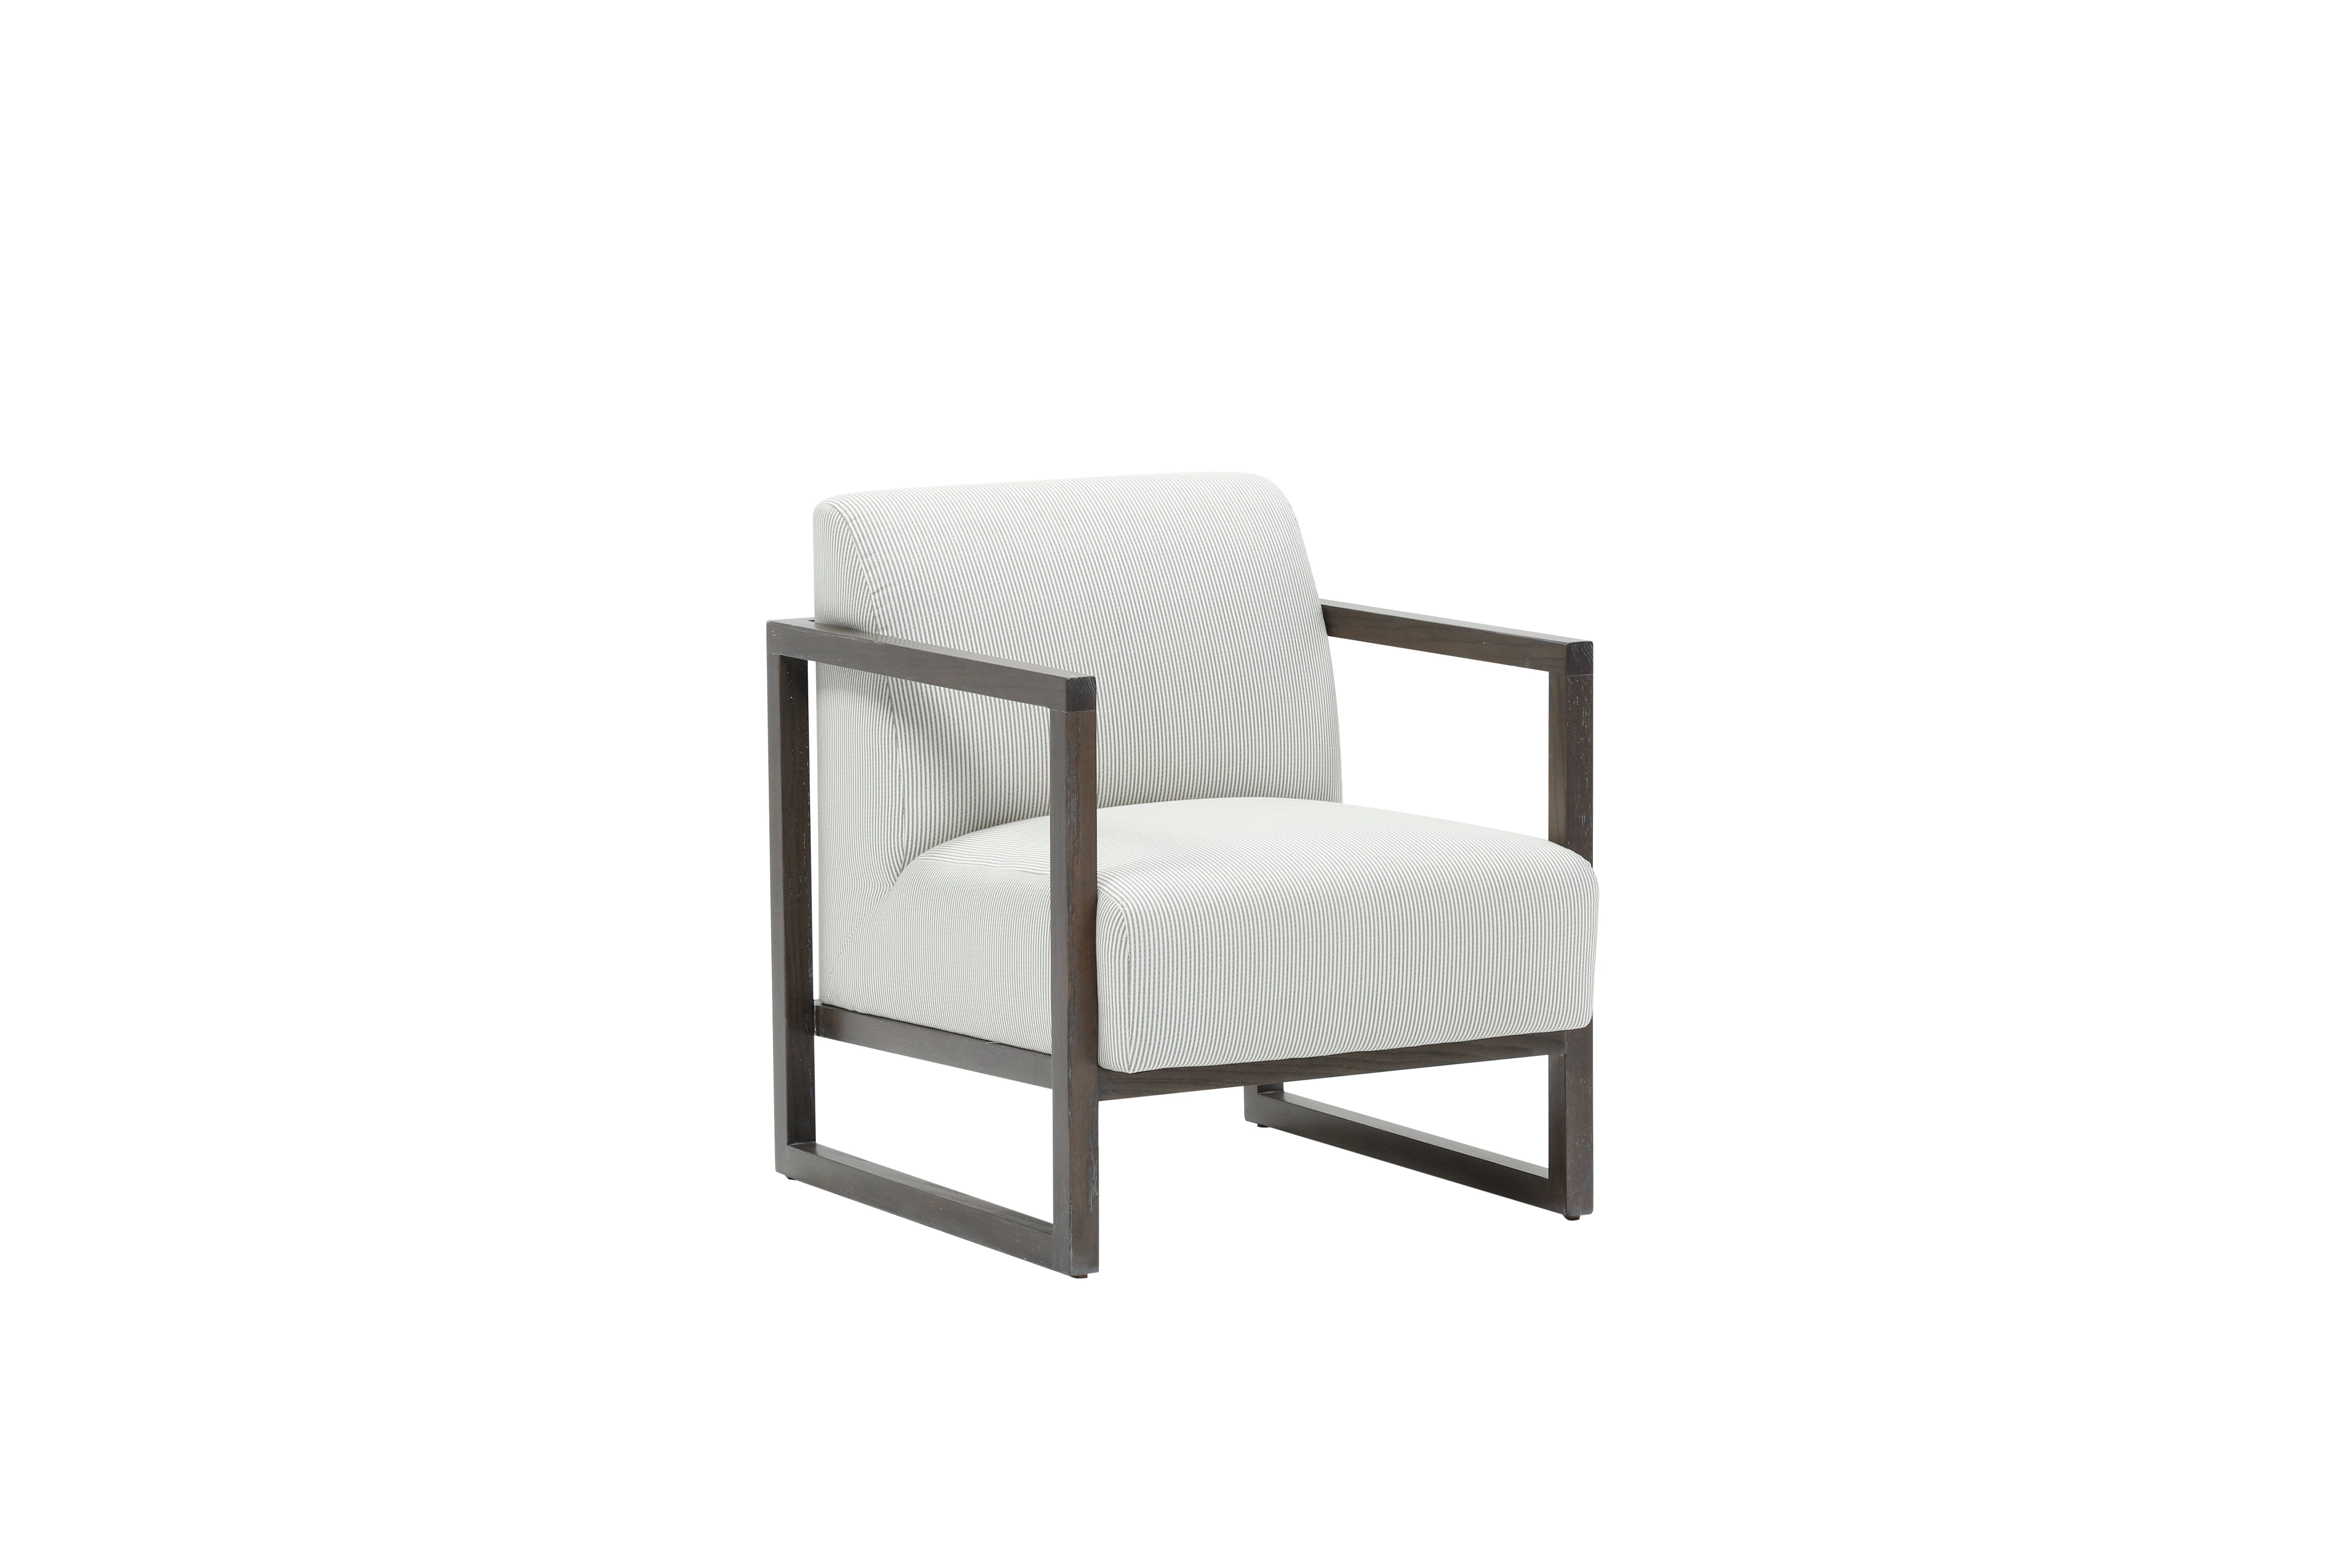 Nate Berkus Just Launched A Home Collection With Hubby Jeremiah In Gwen Sofa Chairs By Nate Berkus And Jeremiah Brent (Image 6 of 20)